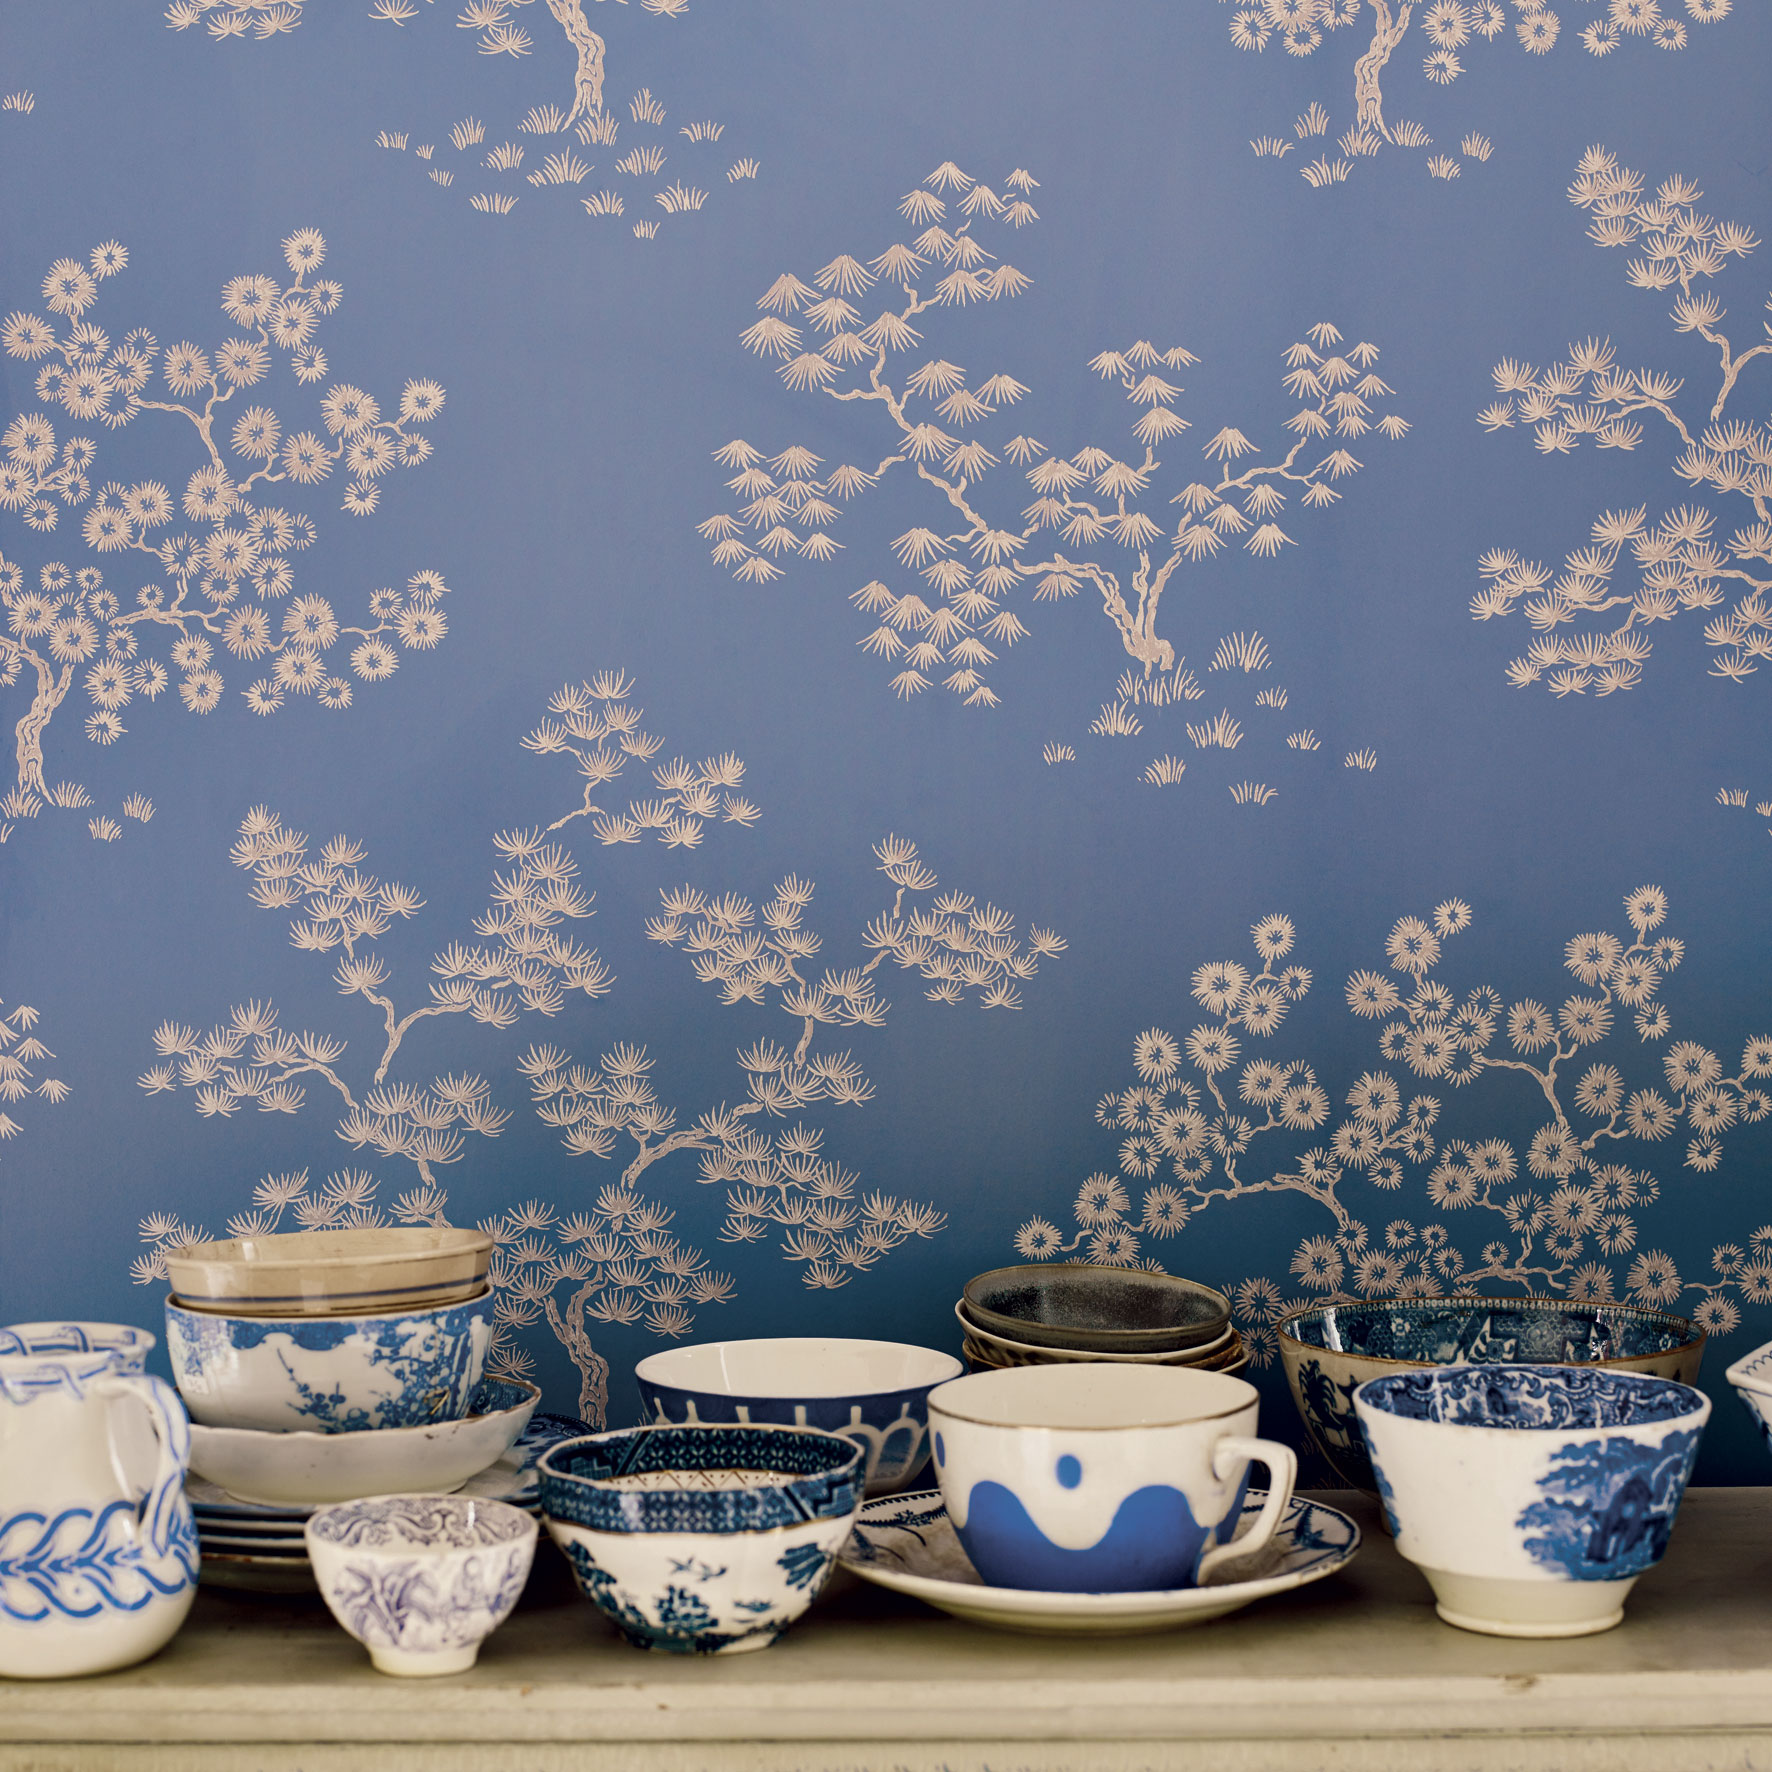 'Kyoto' wallpaper in Summer, £75 per roll, Fired Earth